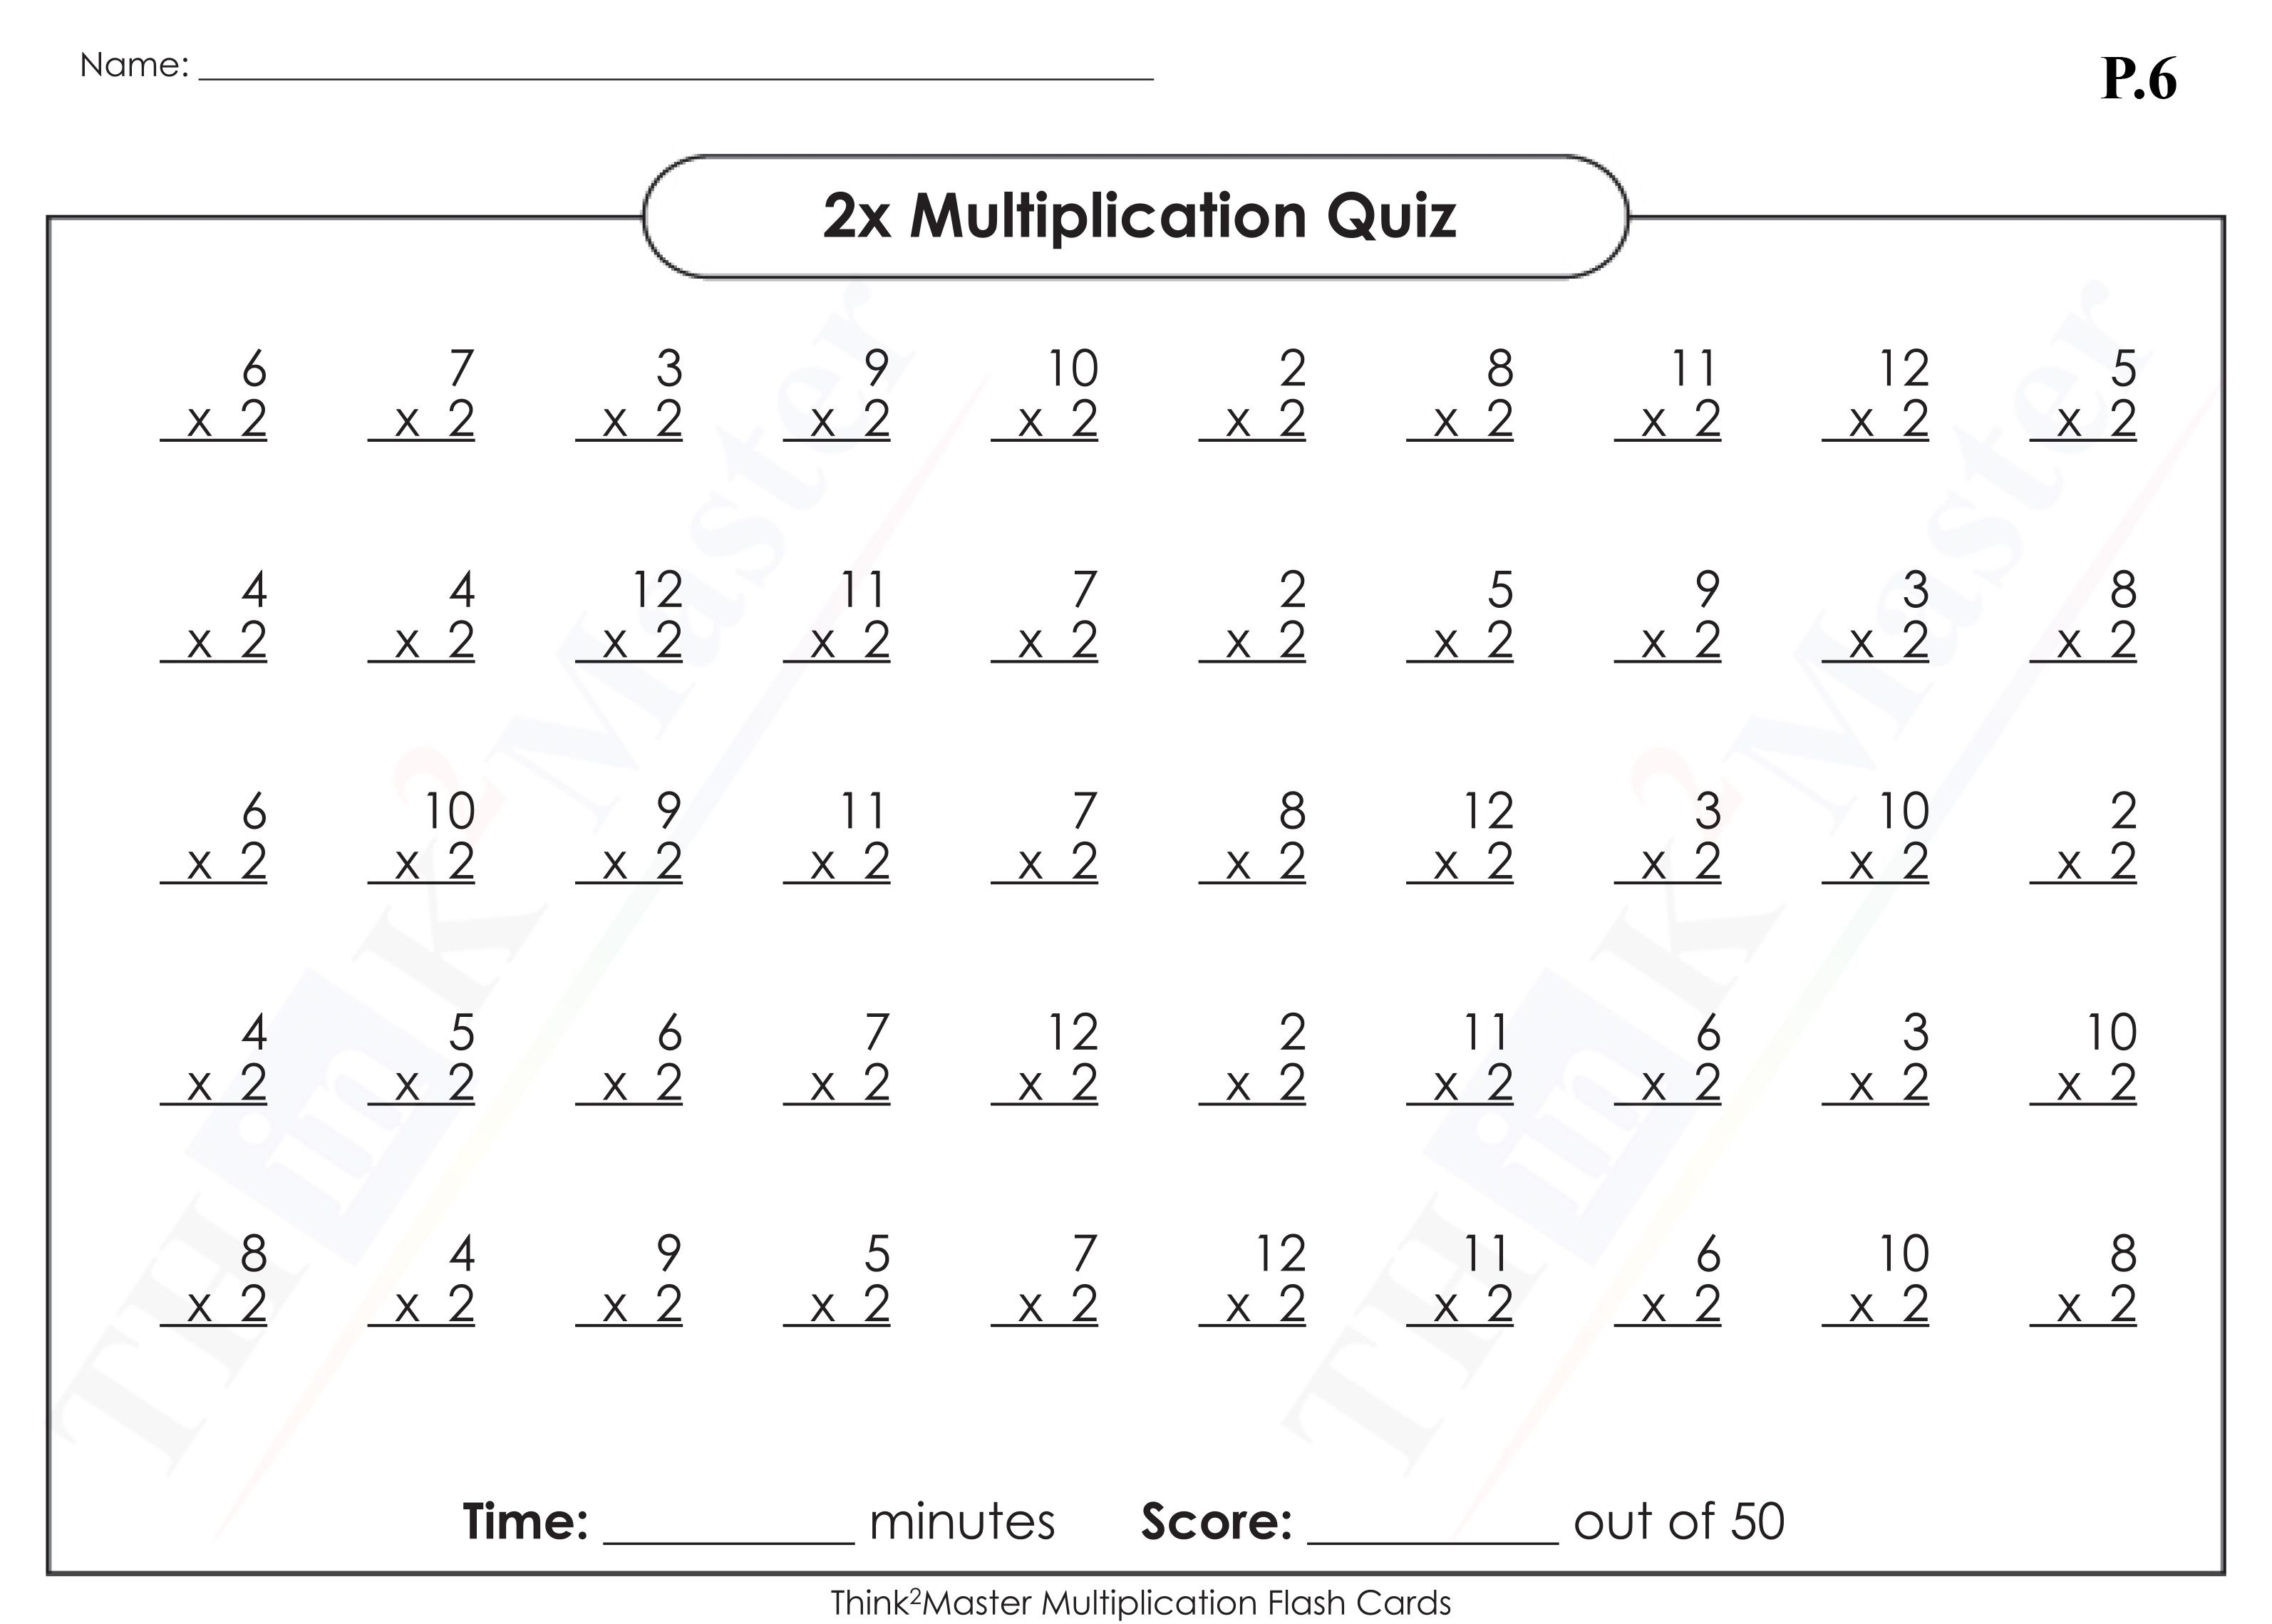 Free Printable 2x Multiplication Worksheet